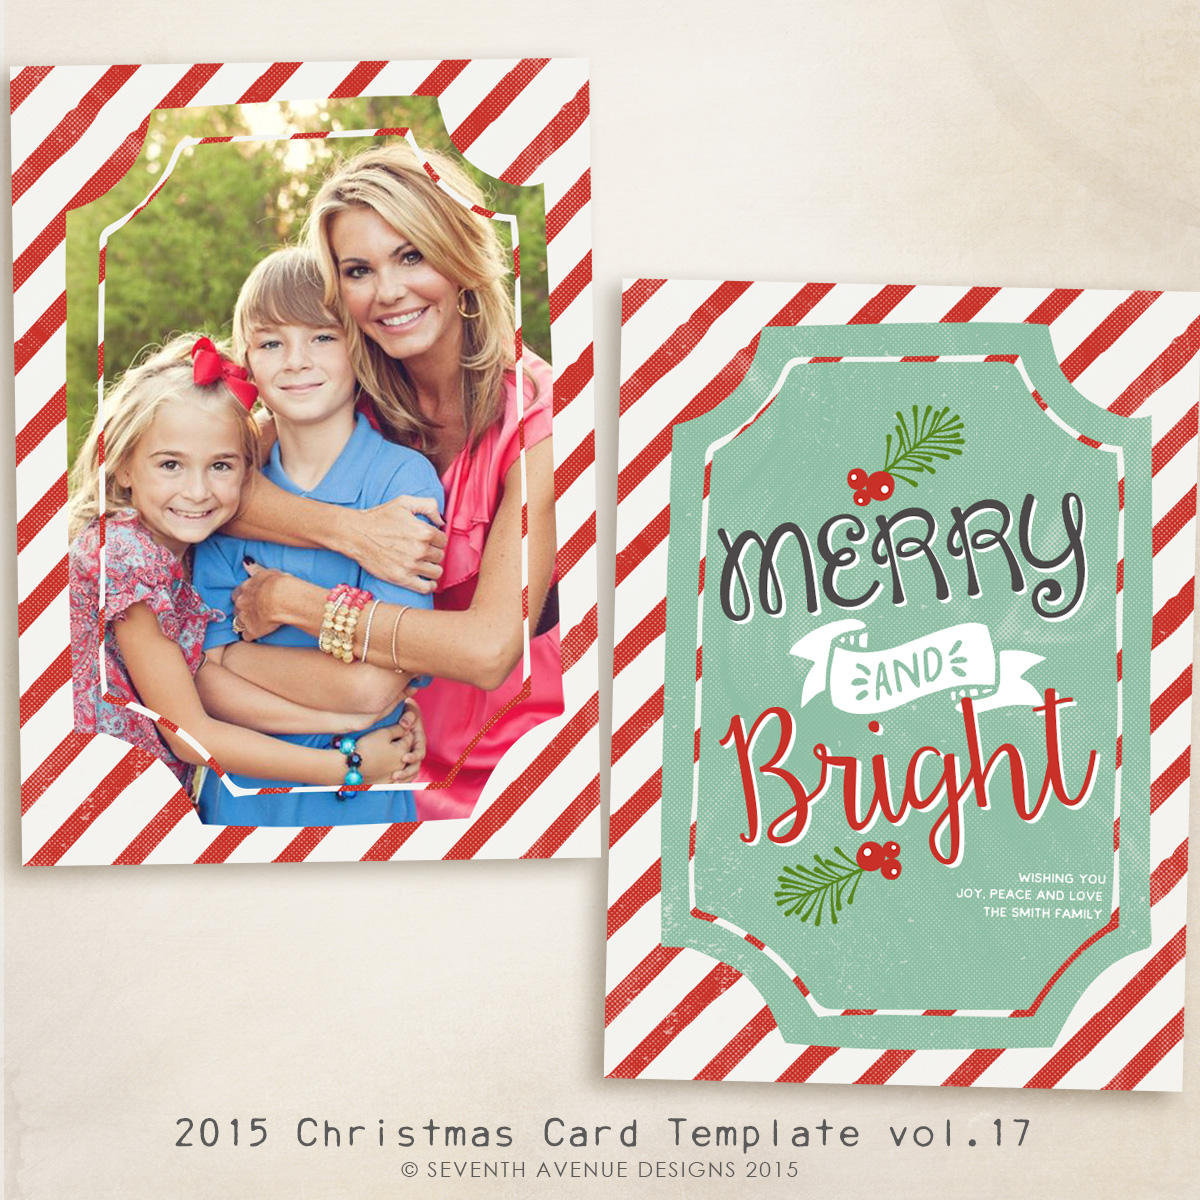 2015 Christmas Card Templates vol.17 -- 7x5 inch card template